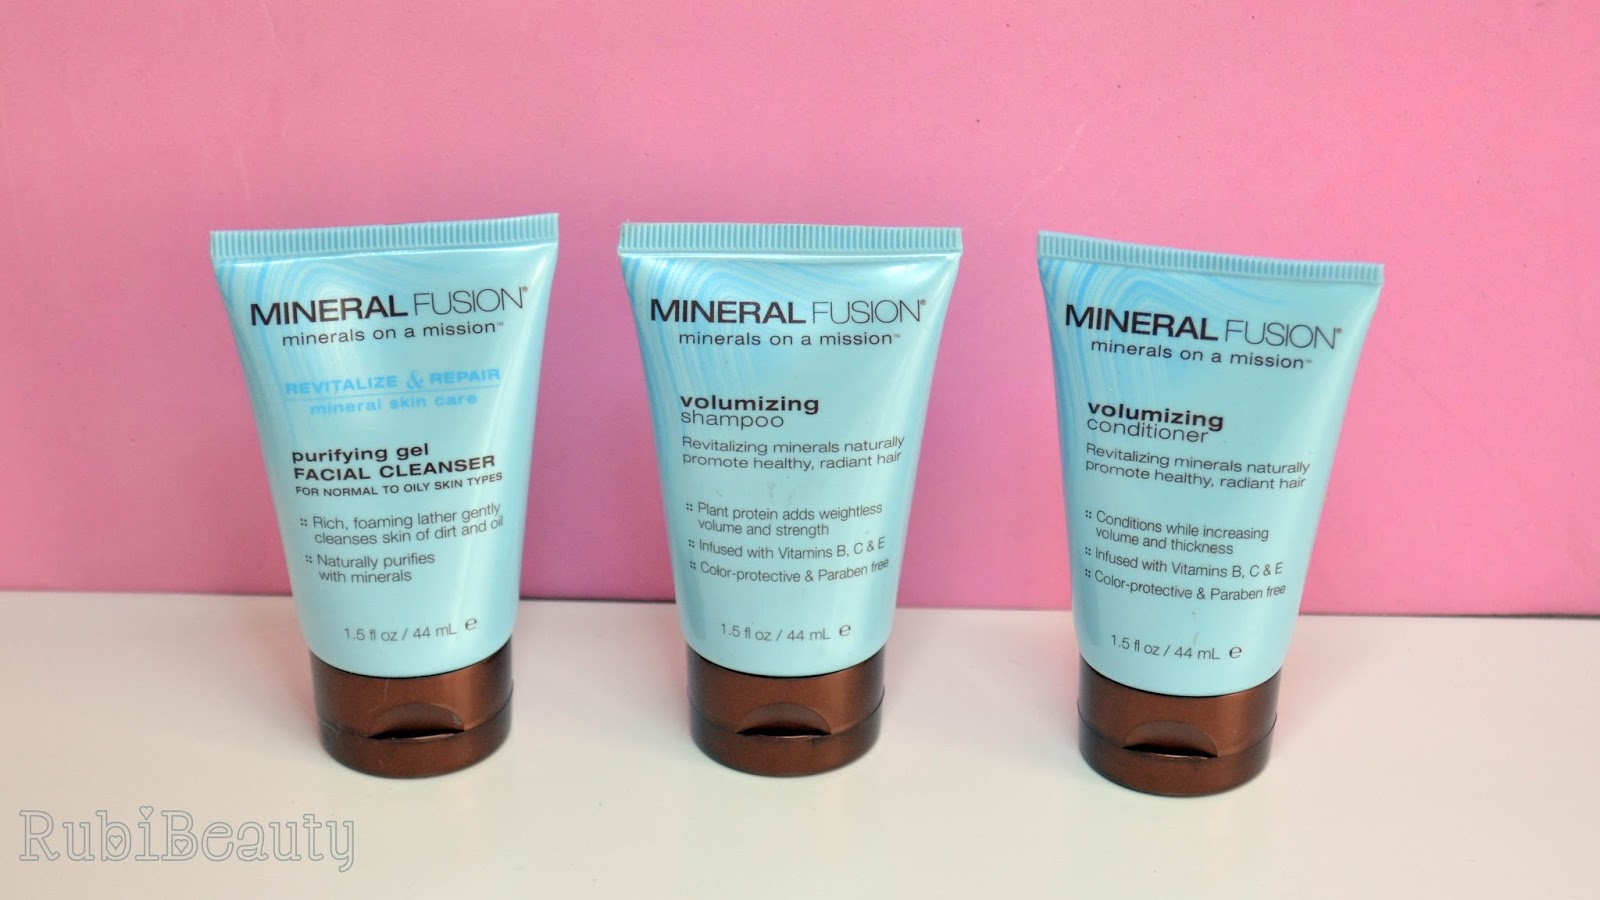 iherb haul review impresiones opinion compras mineral fusion volumen champu